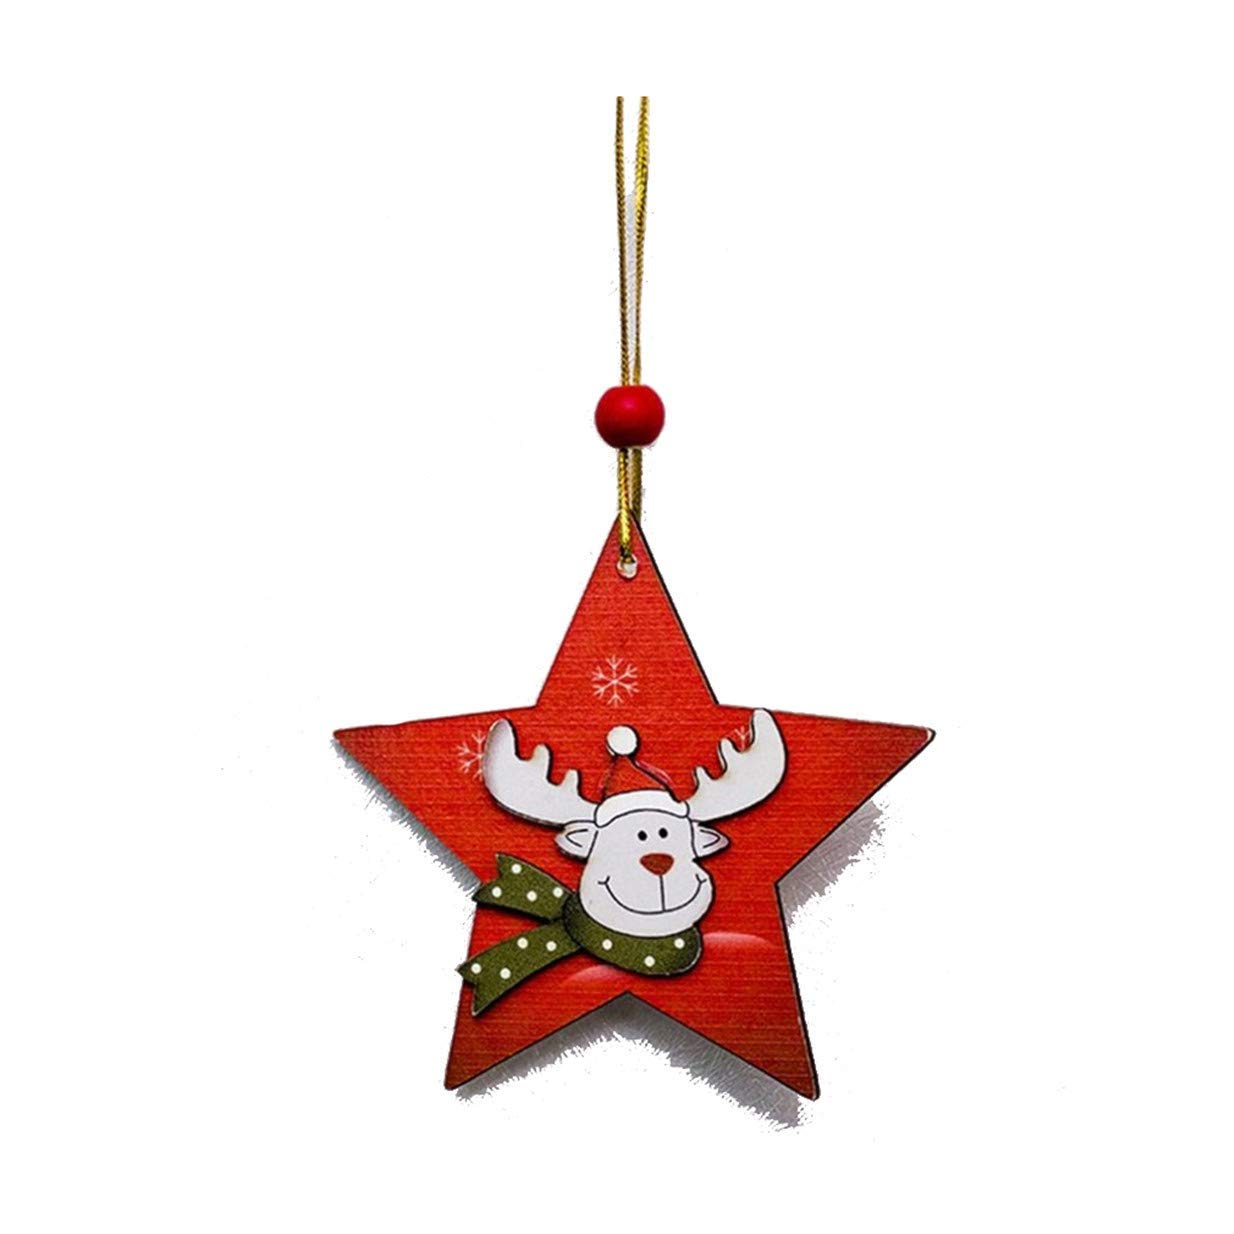 Tcplyn Premium Christmas Tree Creative Painted Pendant Wooden Sign Ornaments Closet Door and Window Tag AccessoriesPentagram elk